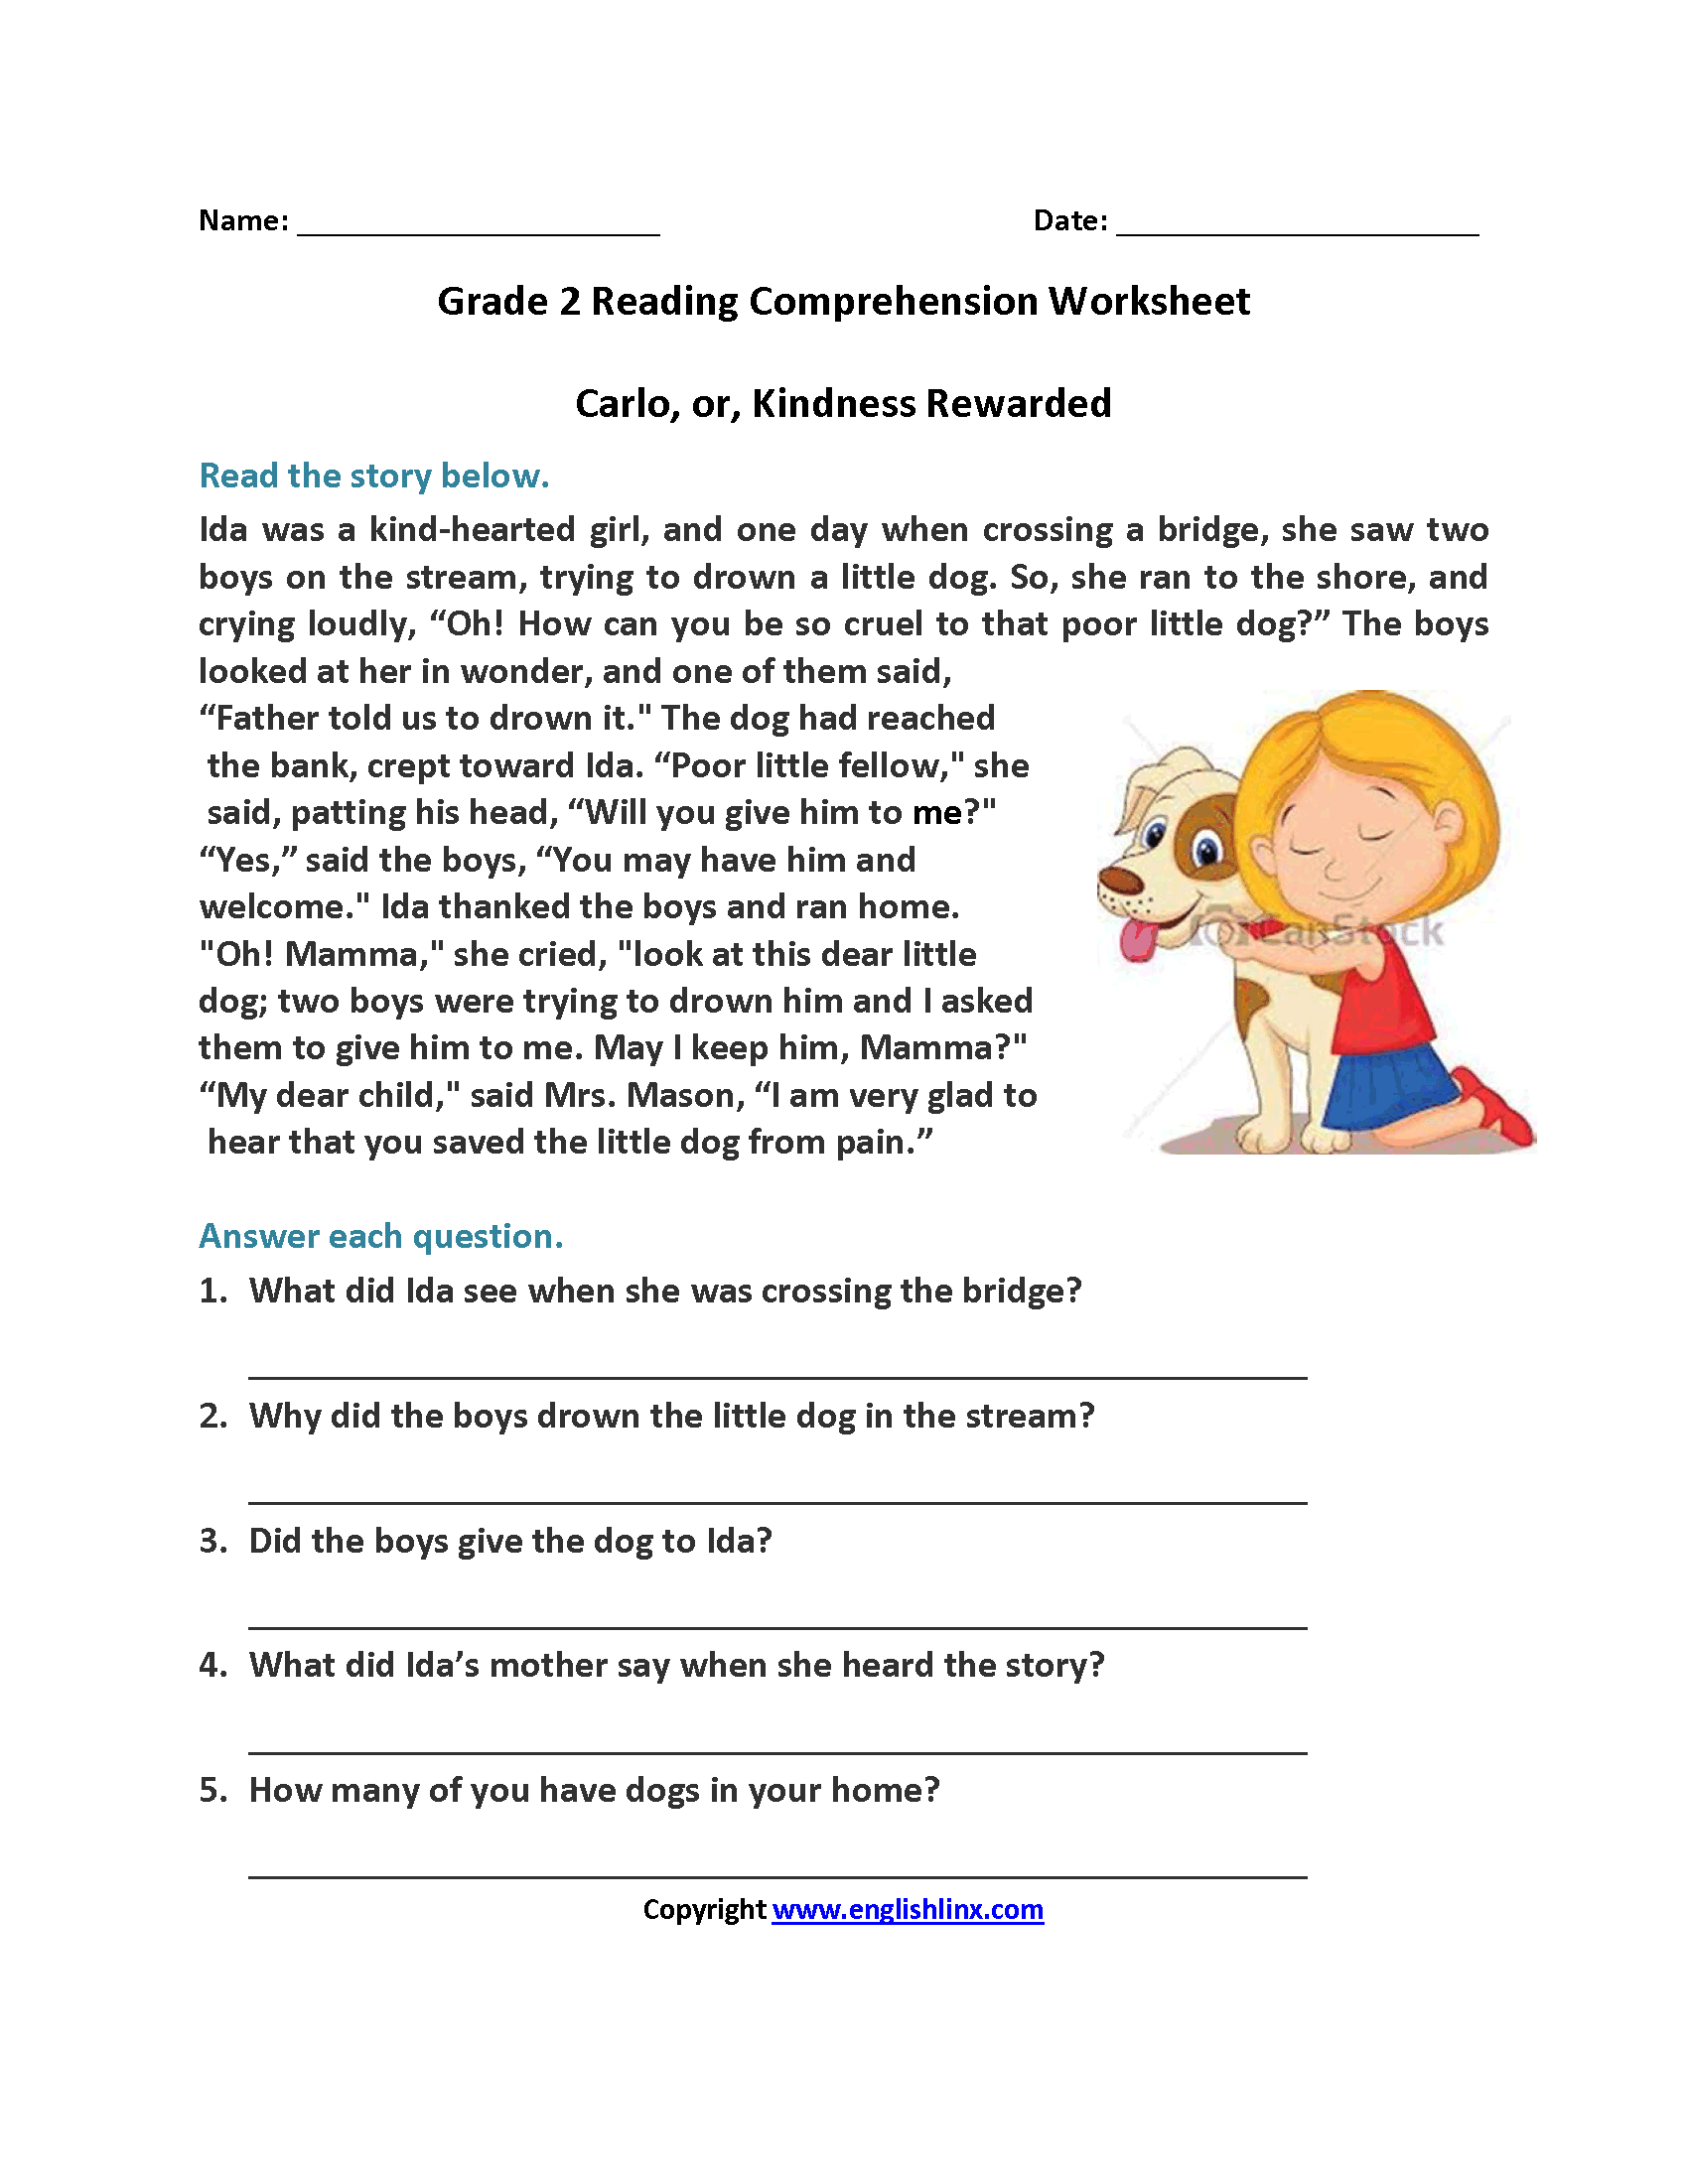 Carlo Or Kindness Rewarded Second Grade Reading Worksheets | Reading - Free Printable Reading Comprehension Worksheets Grade 5